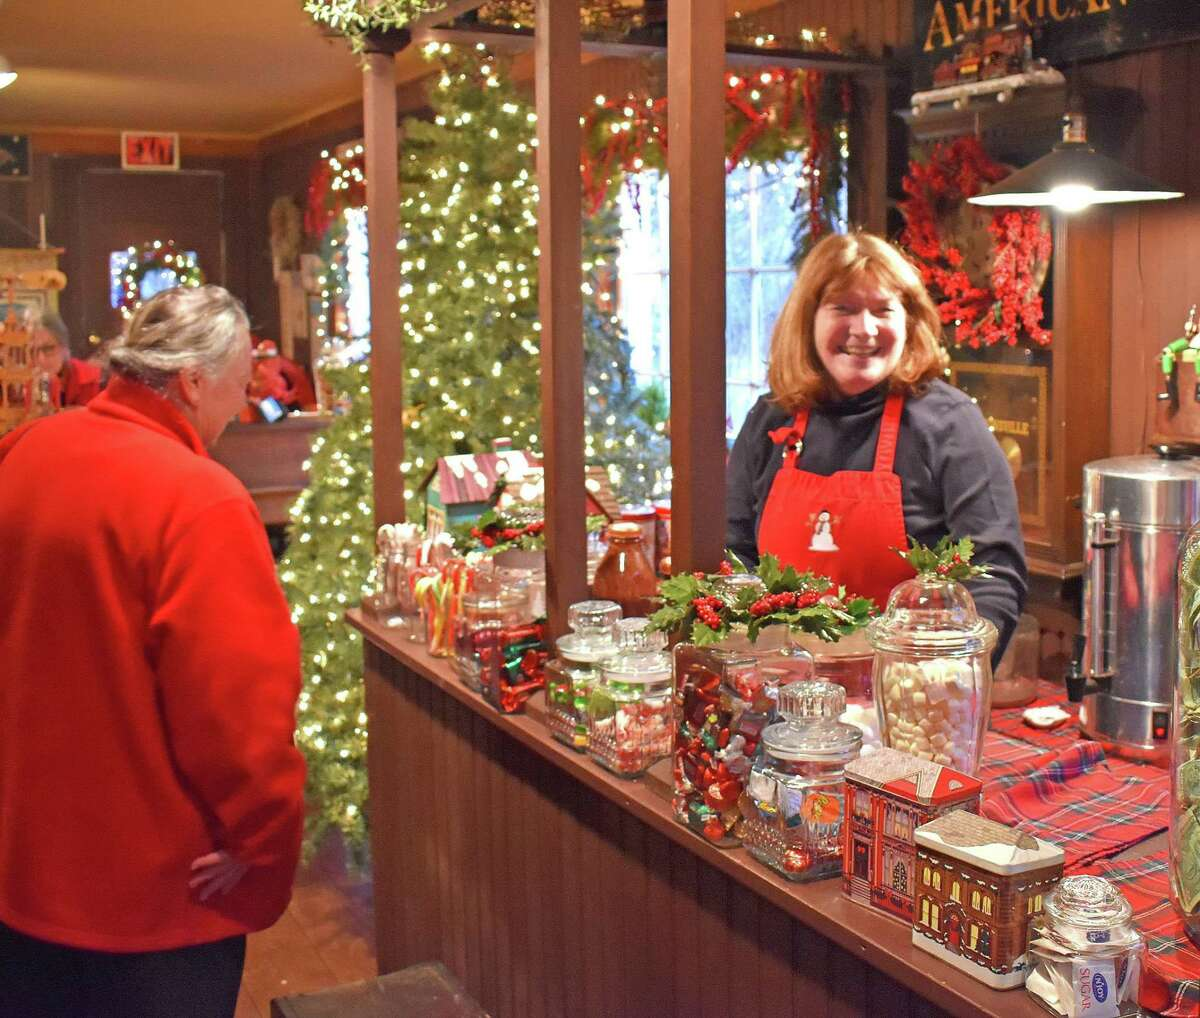 Georganne Bensh, the driving force behind the Christmas show at Merwinsville Hotel in Gaylordsville, is shown above at last year's festive event. This year's event will open Nov. 29.